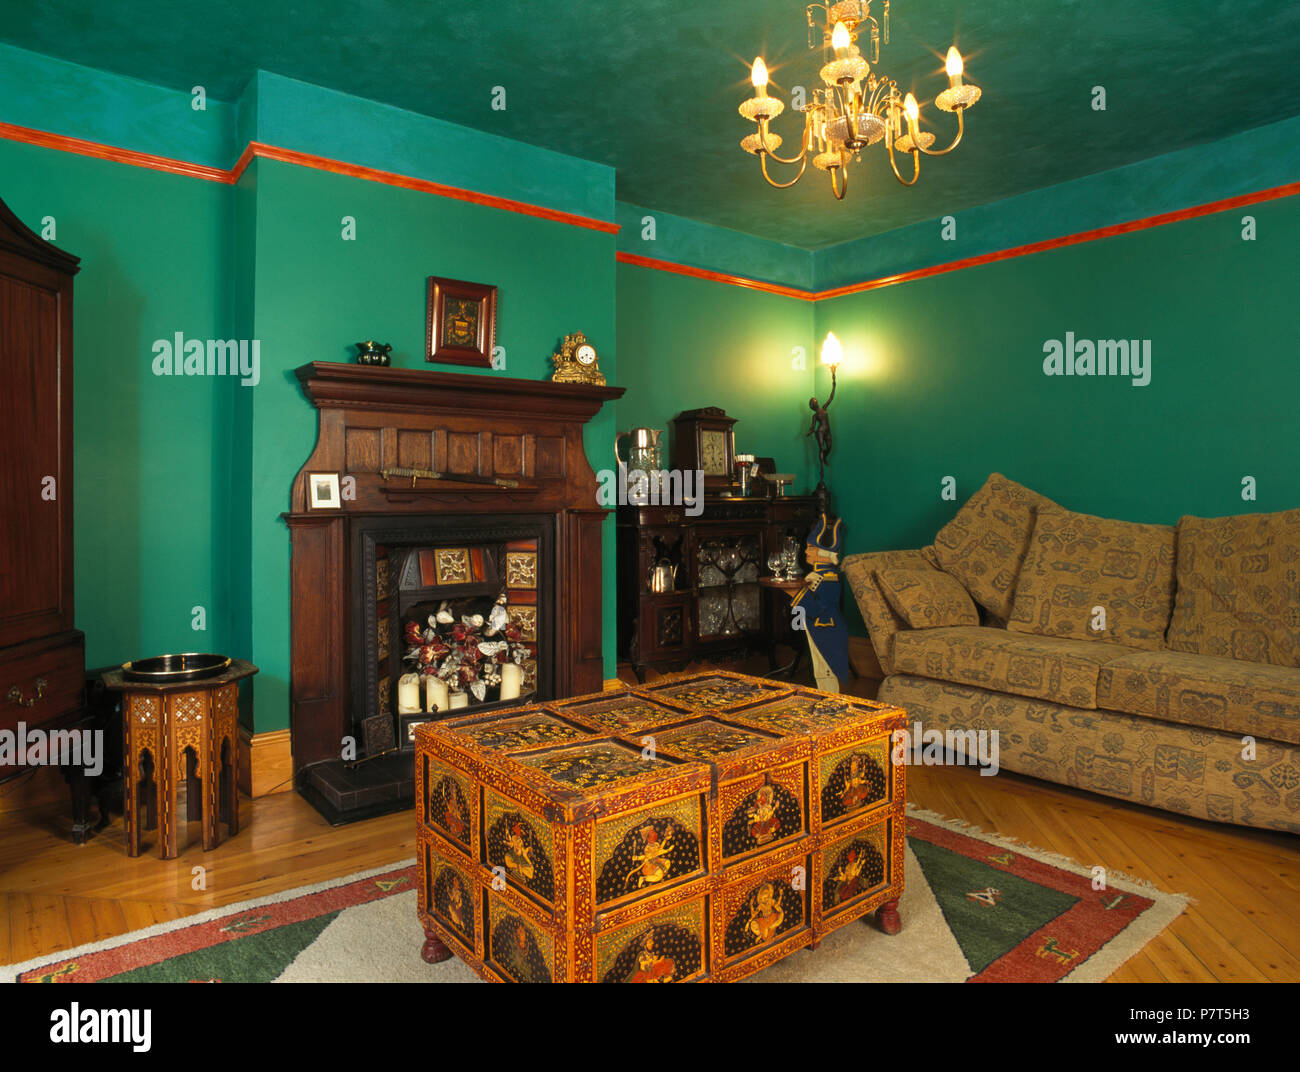 Middle eastern style painted chest in green nineties living ...